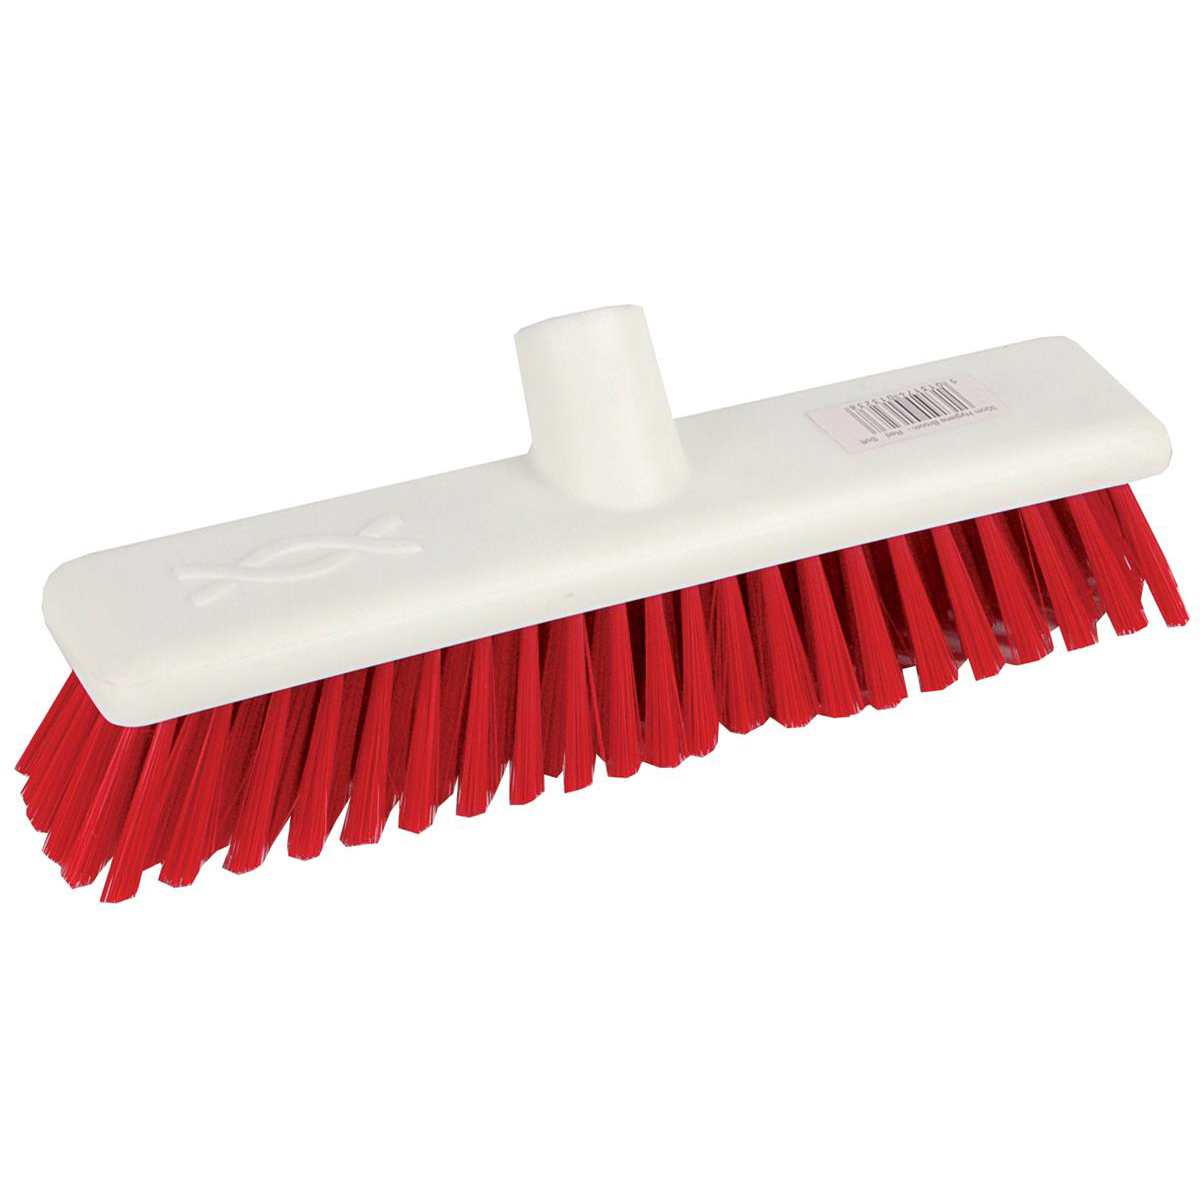 Robert Scott & Sons Abbey Hygiene Broom 12inch Washable Soft Broom Head Red Ref 102910RED